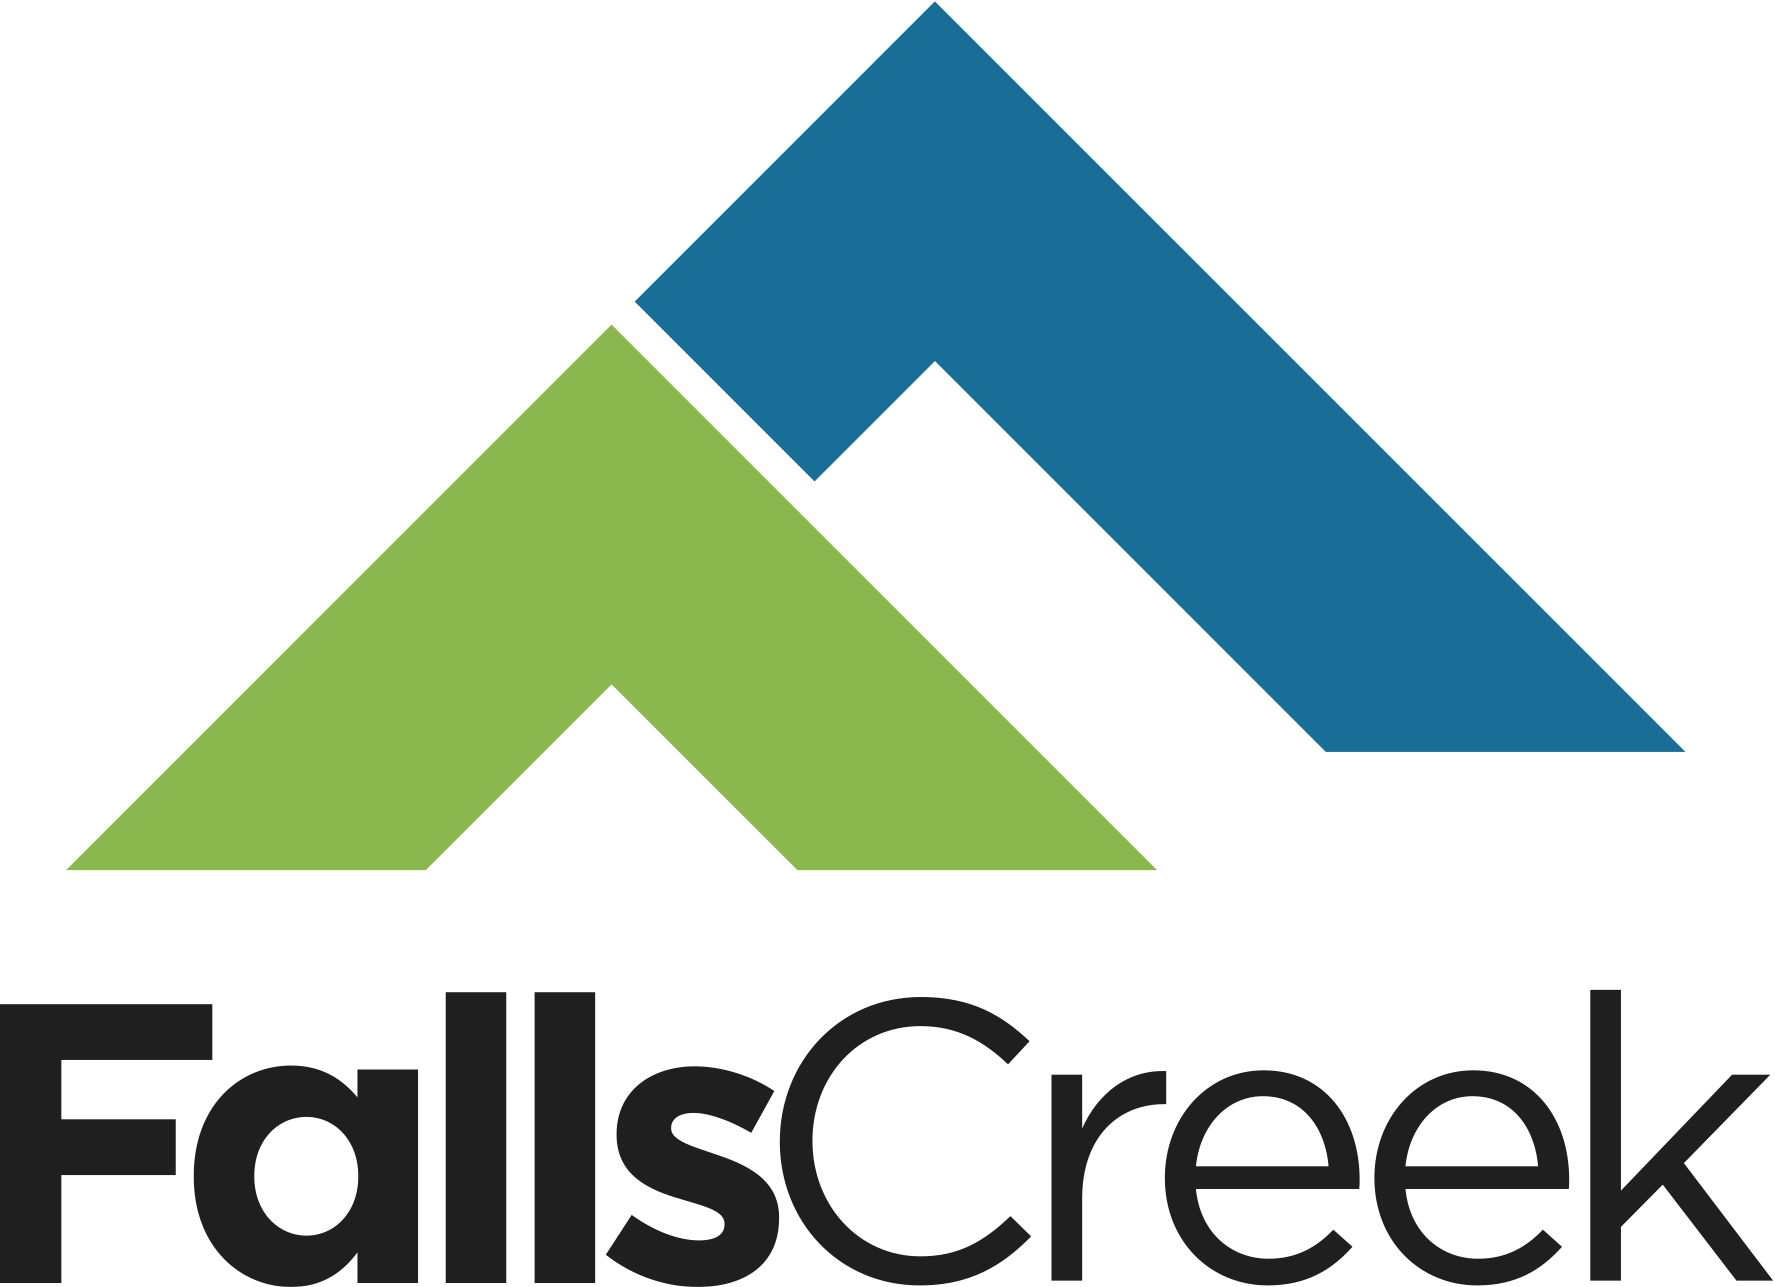 square falls creek logo